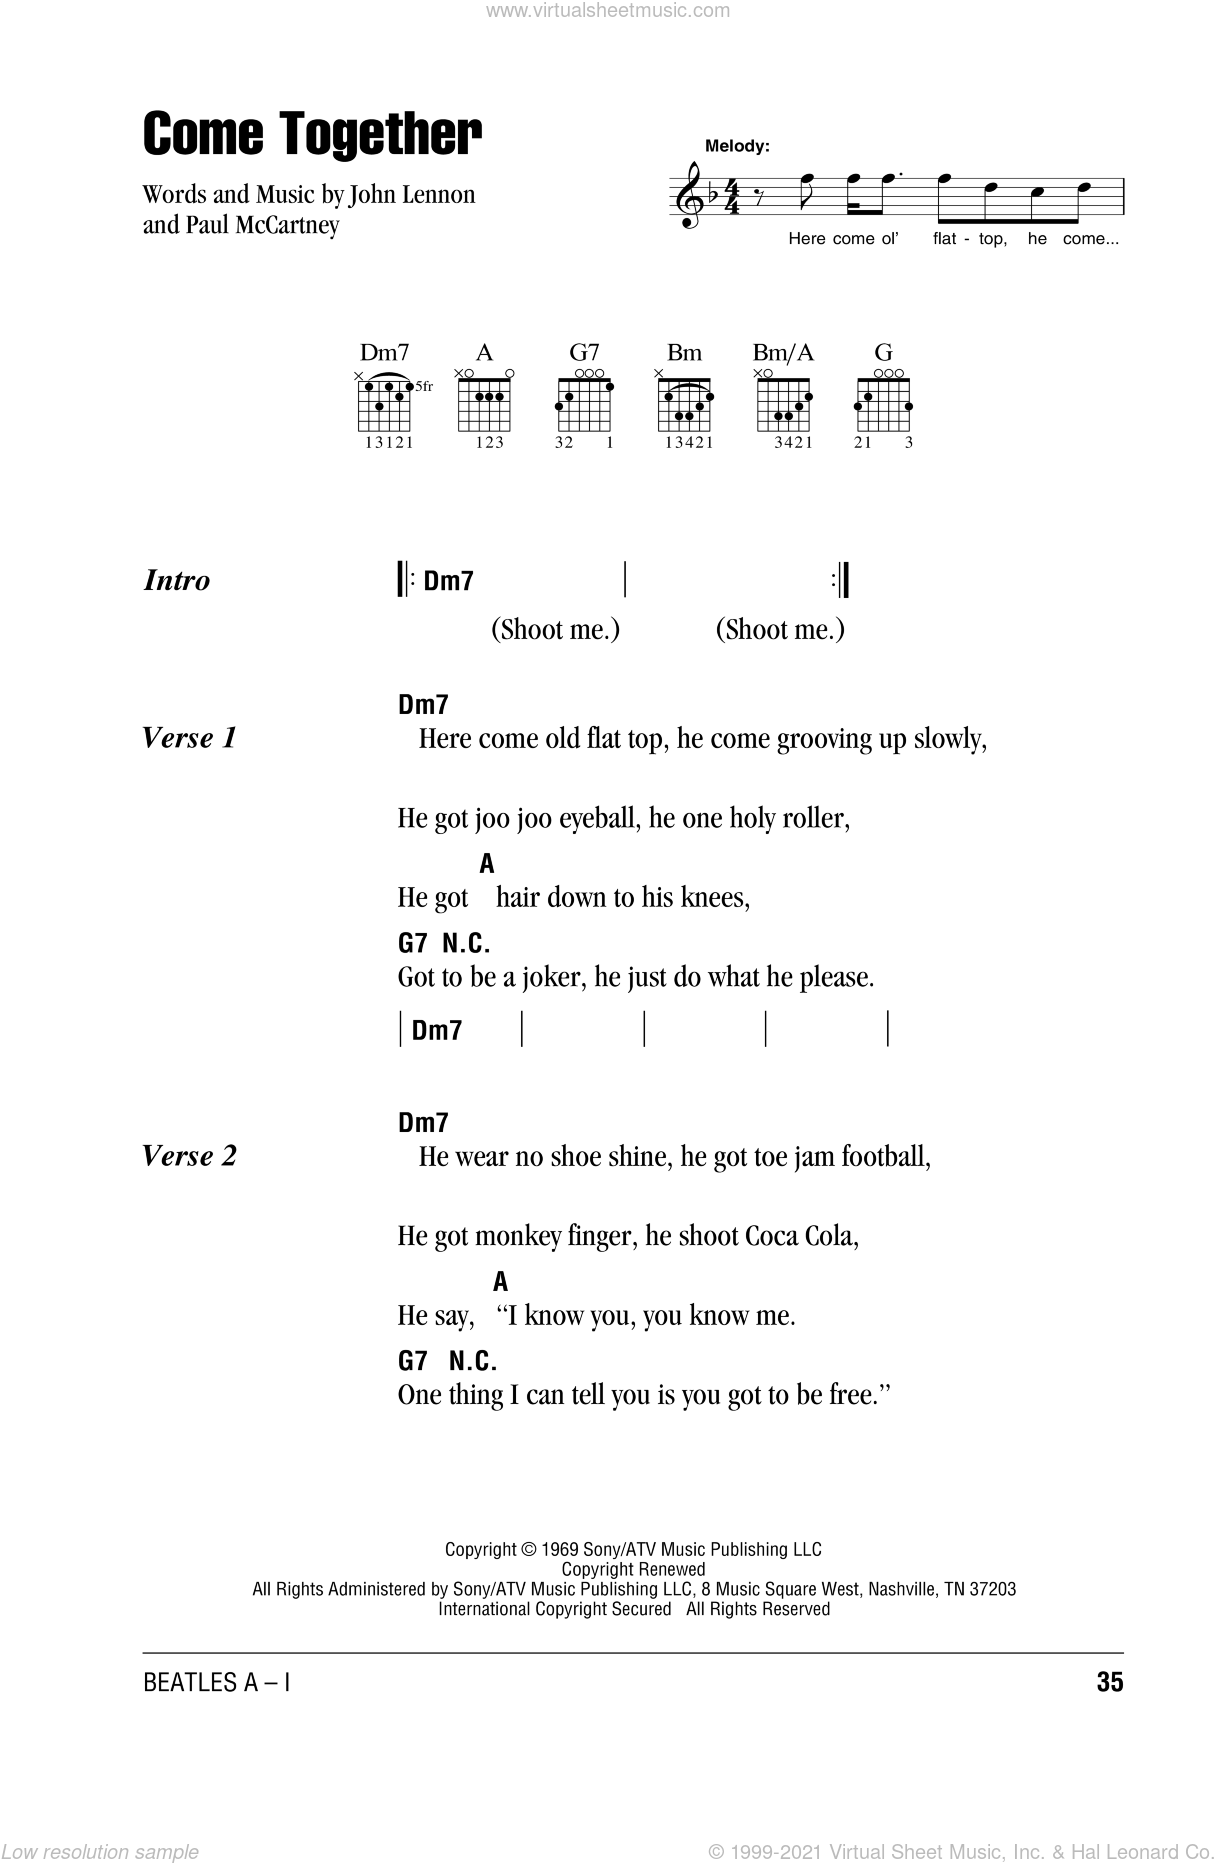 Come Together sheet music for guitar (chords) by Paul McCartney